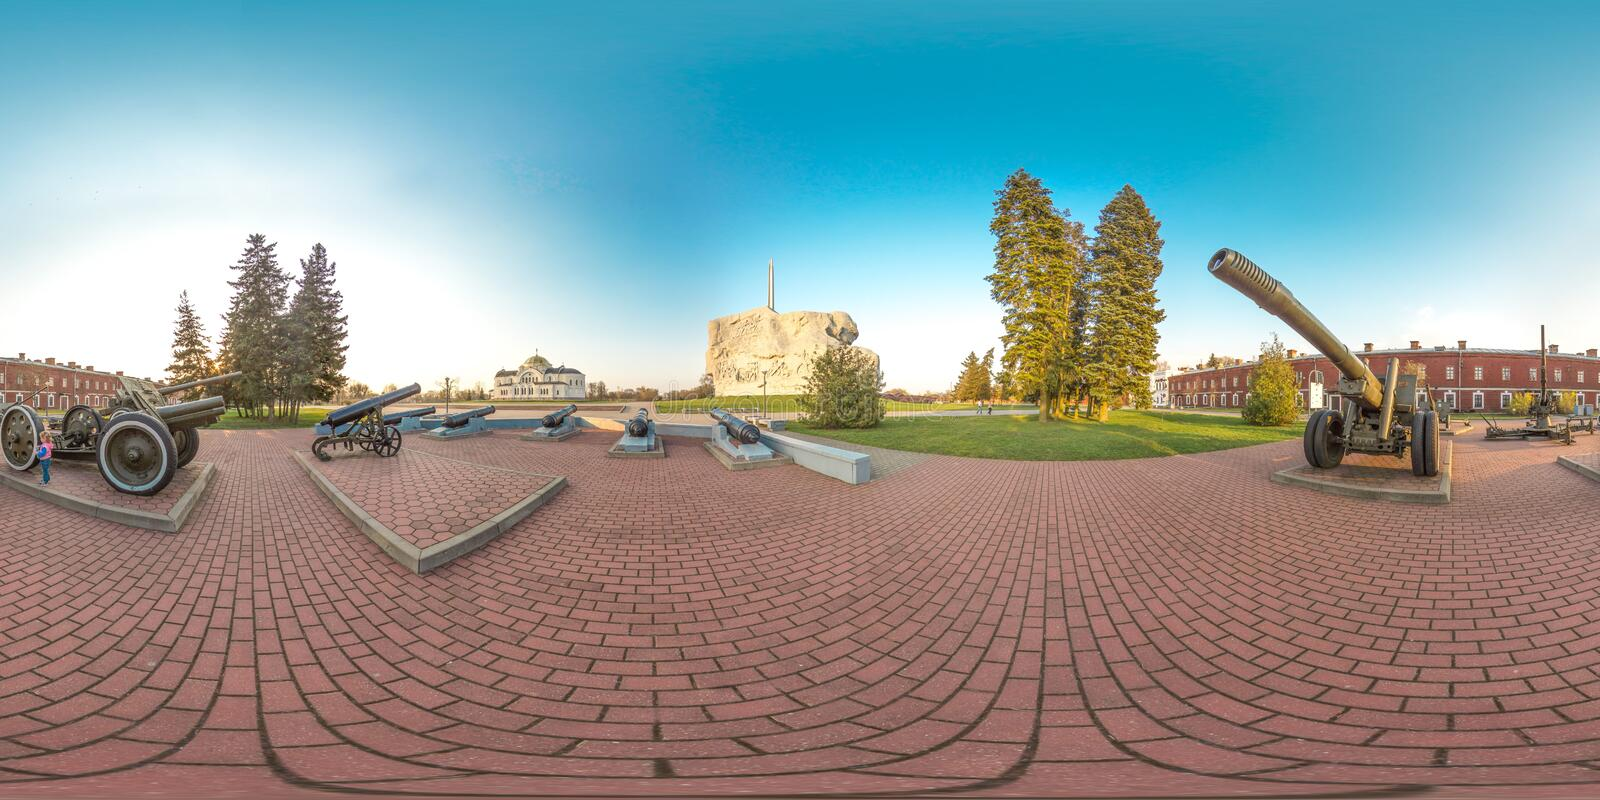 3D spherical panorama with 360 viewing angle. Ready for virtual reality or VR. Full equirectangular projection. Brest fortness. Spring stock photography